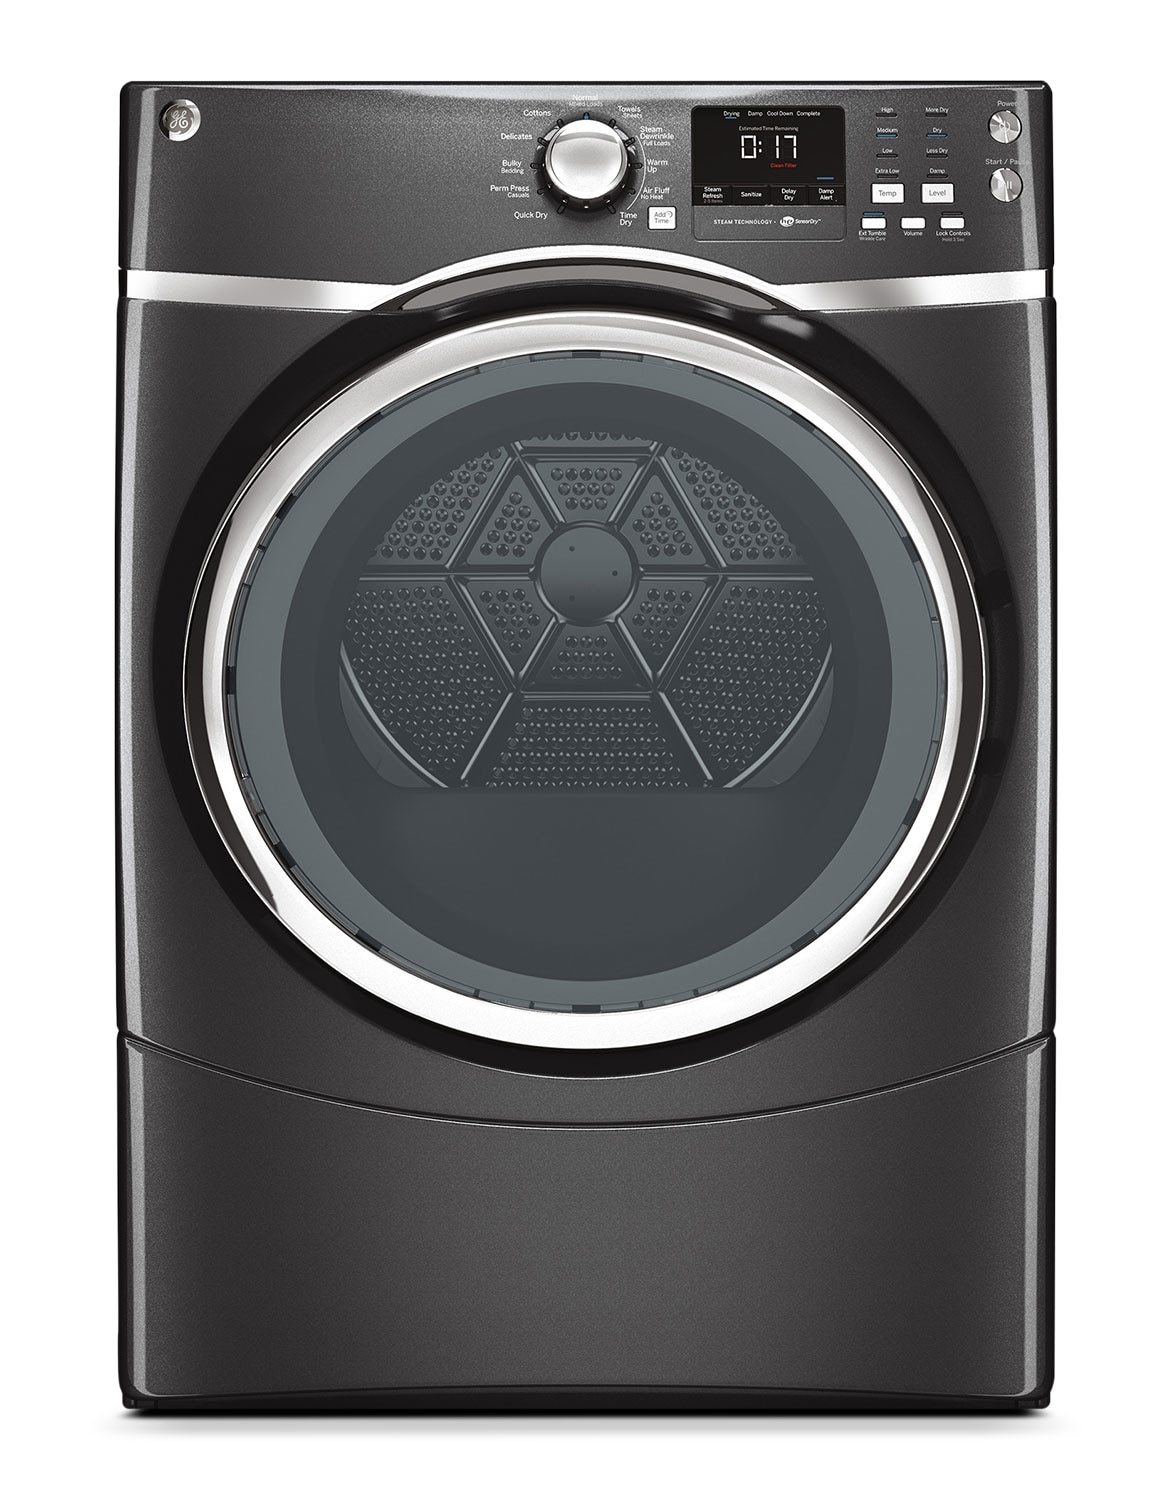 GE Diamond Grey Gas Dryer (7.5 Cu. Ft.) - GFMS175GHDG